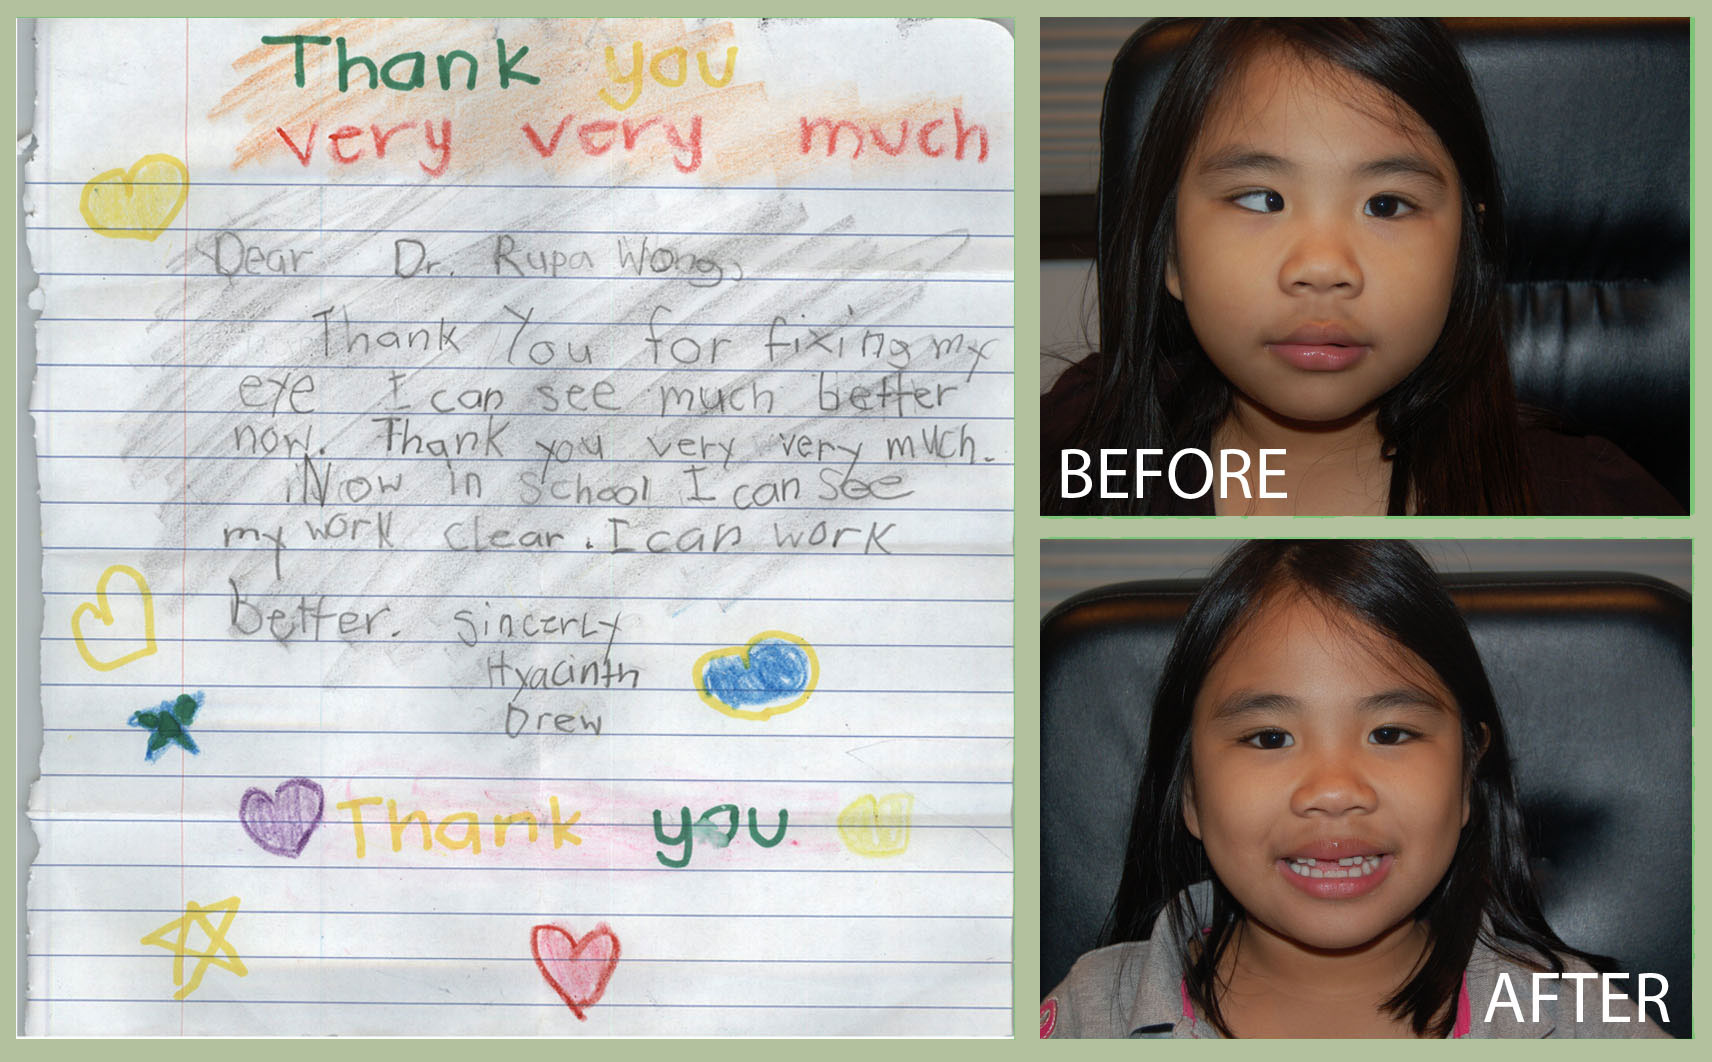 Hyacinth thank you letter